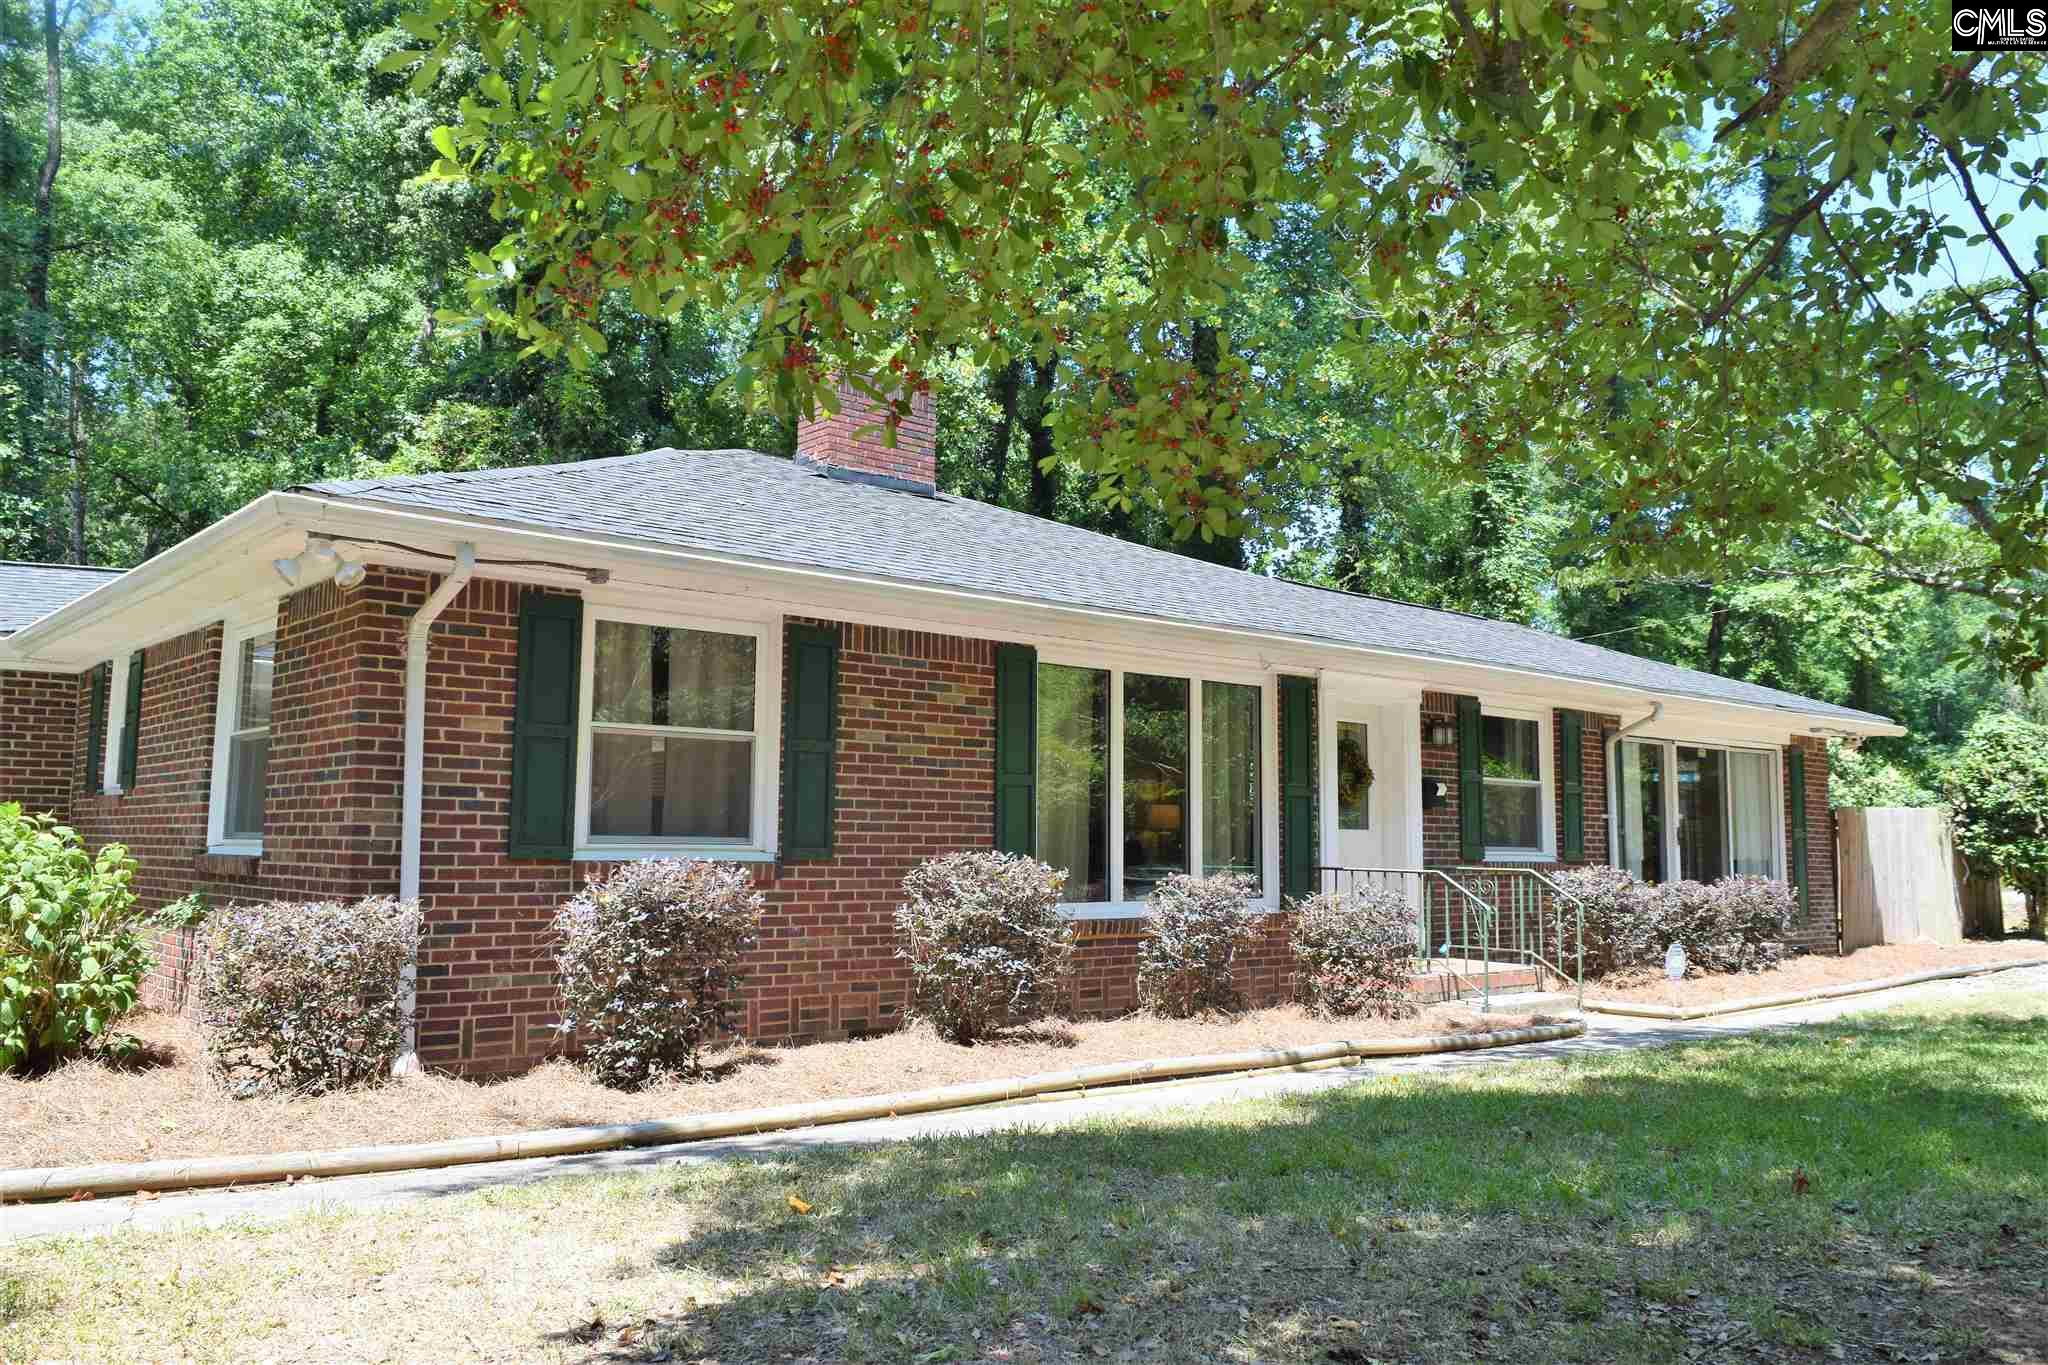 3453 Earlewood Columbia, SC 29201-1421